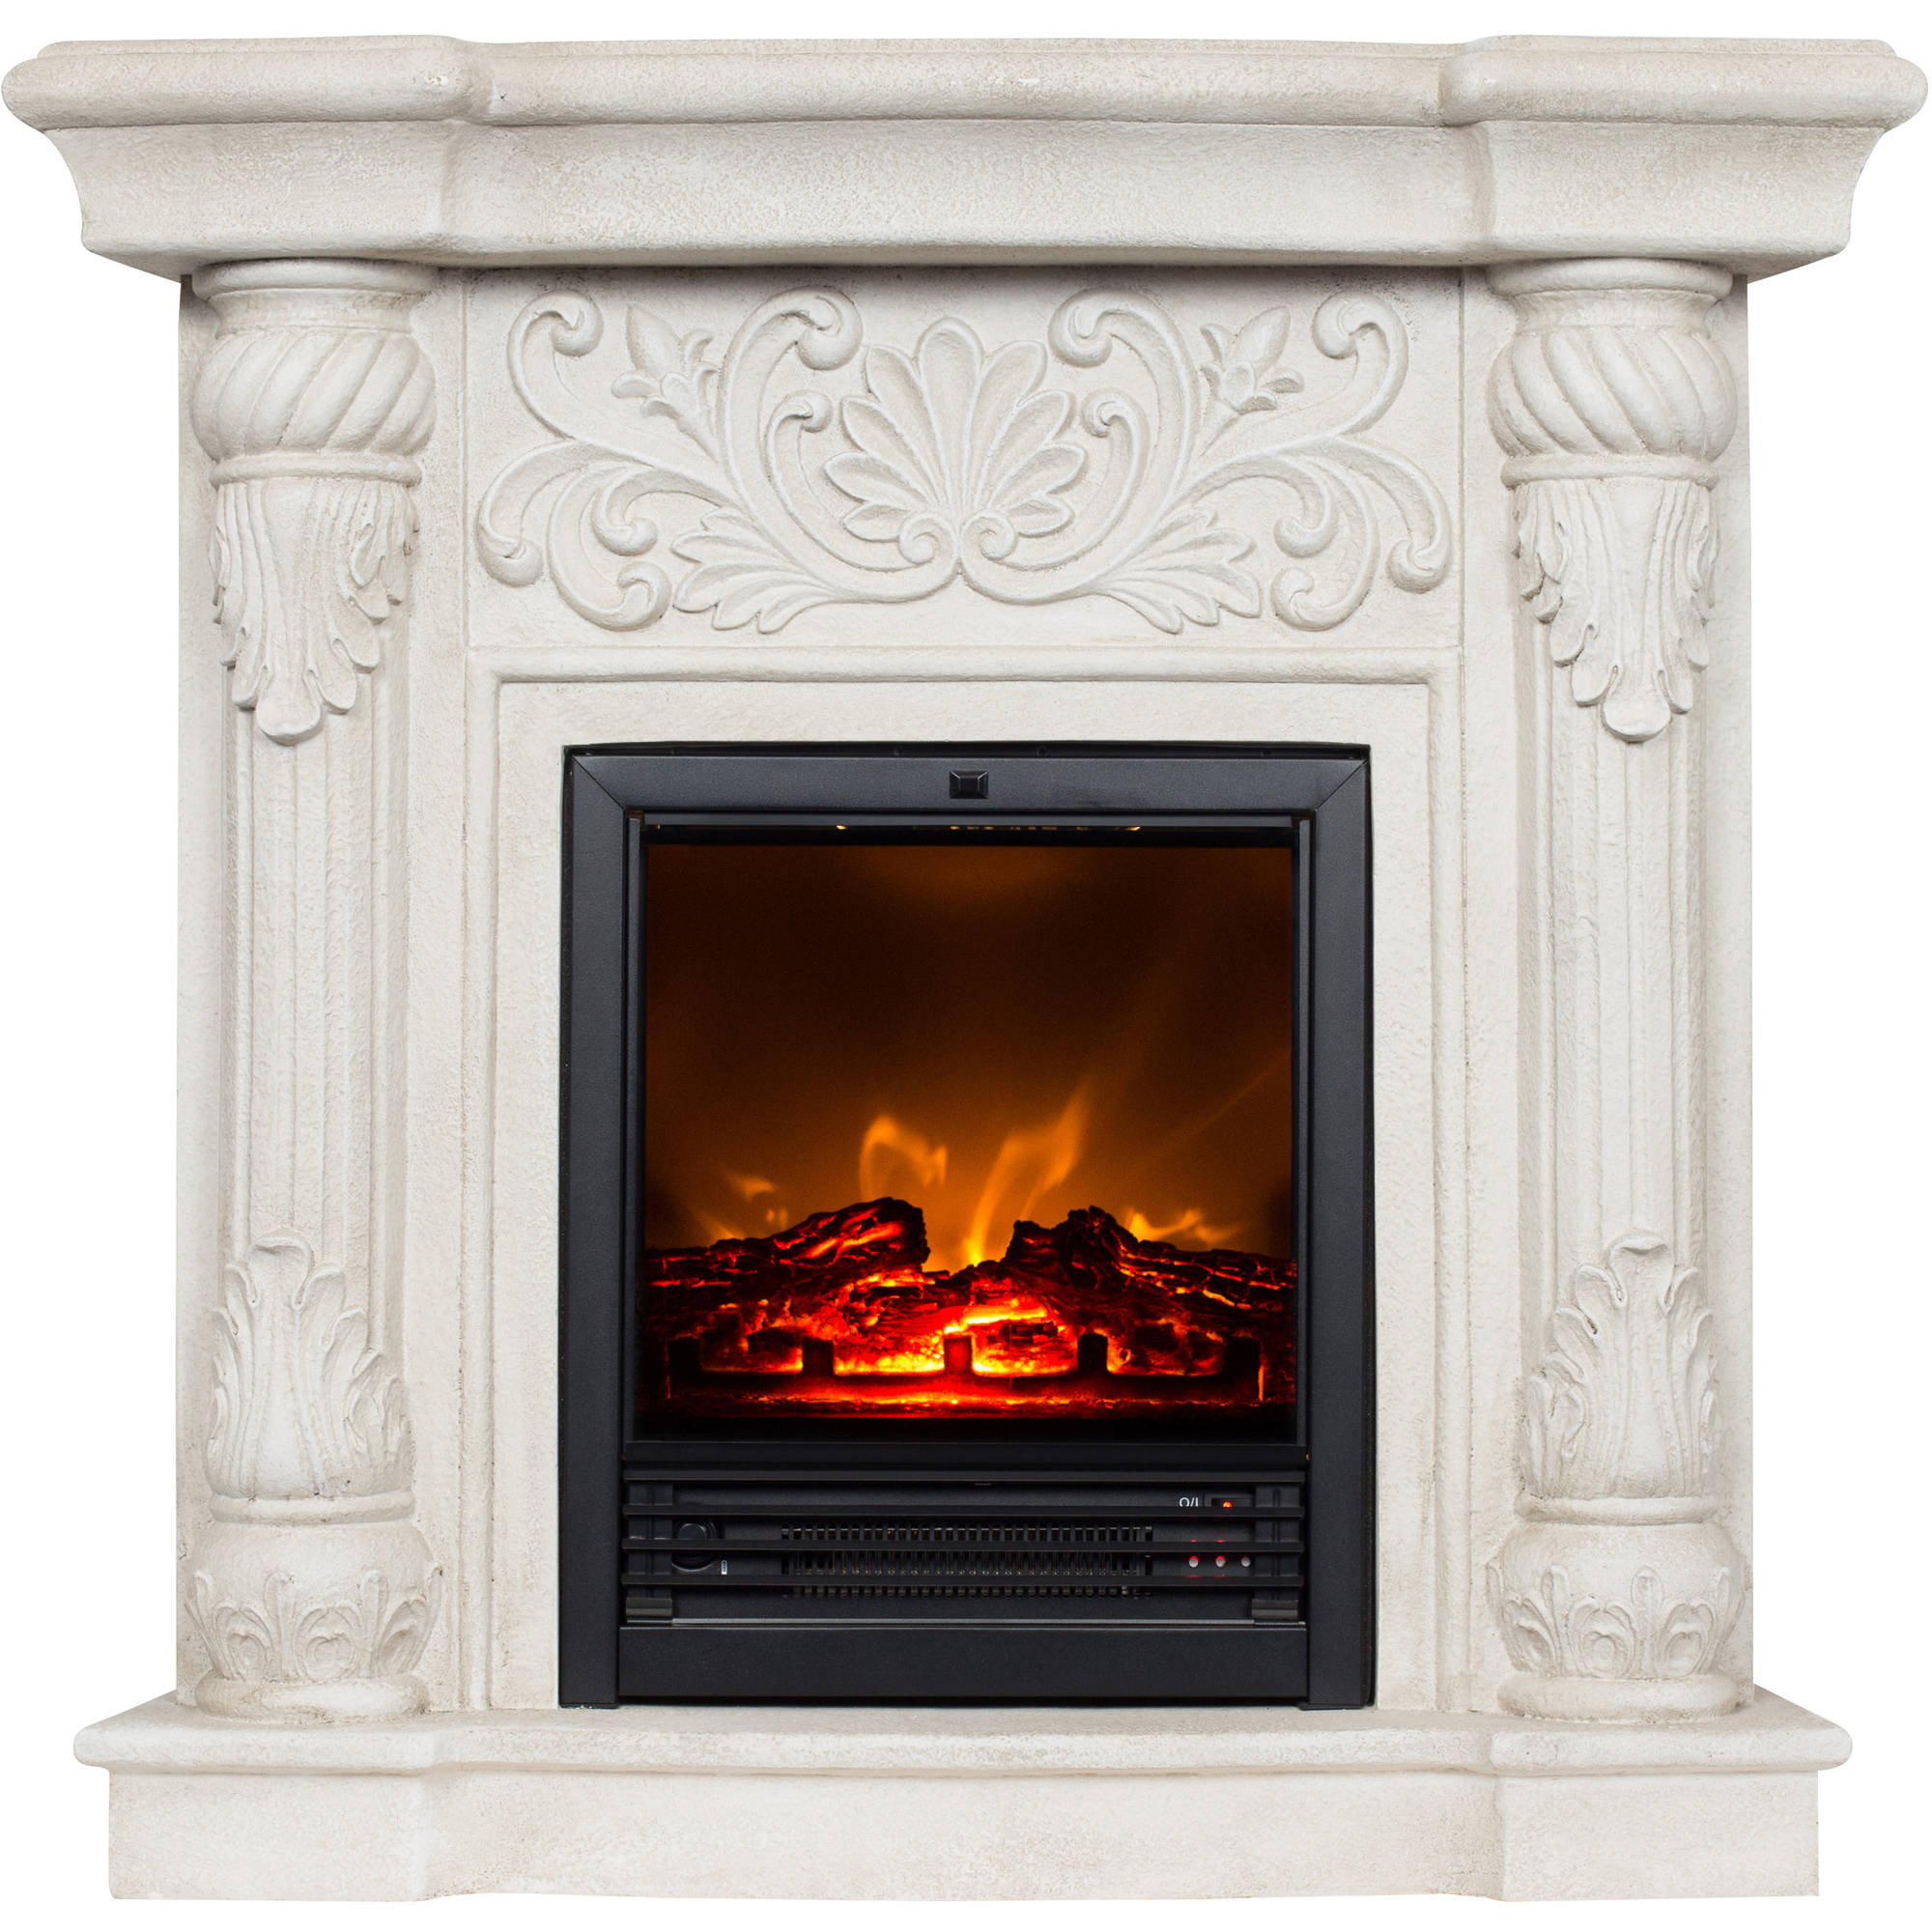 "Buy Polyfiber Electric Fireplace with 41"" Mantle at Walmart.com"